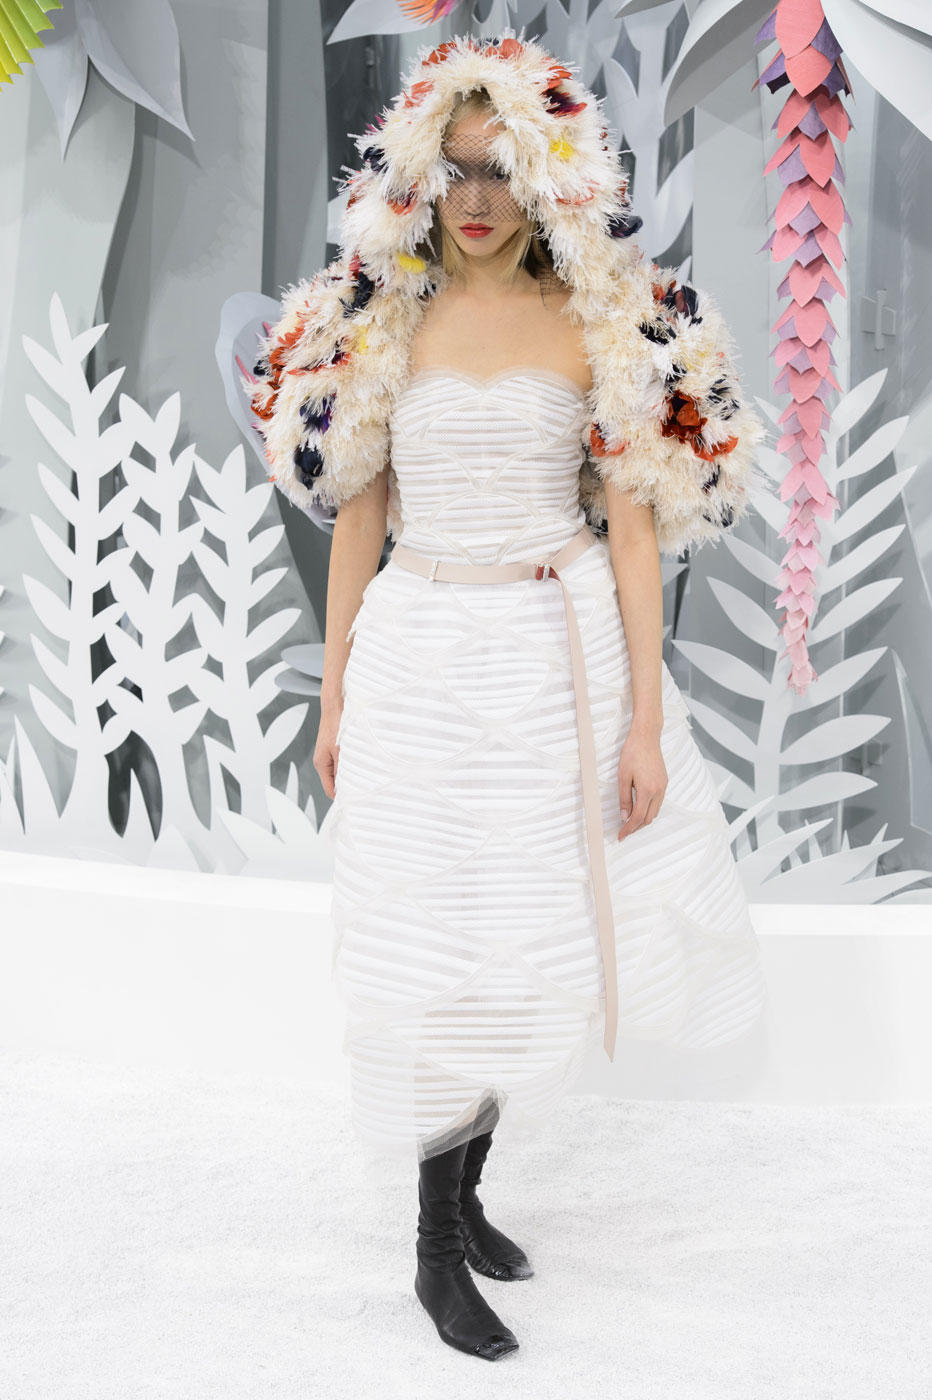 Chanel-fashion-runway-show-haute-couture-paris-spring-summer-2015-the-impression-137